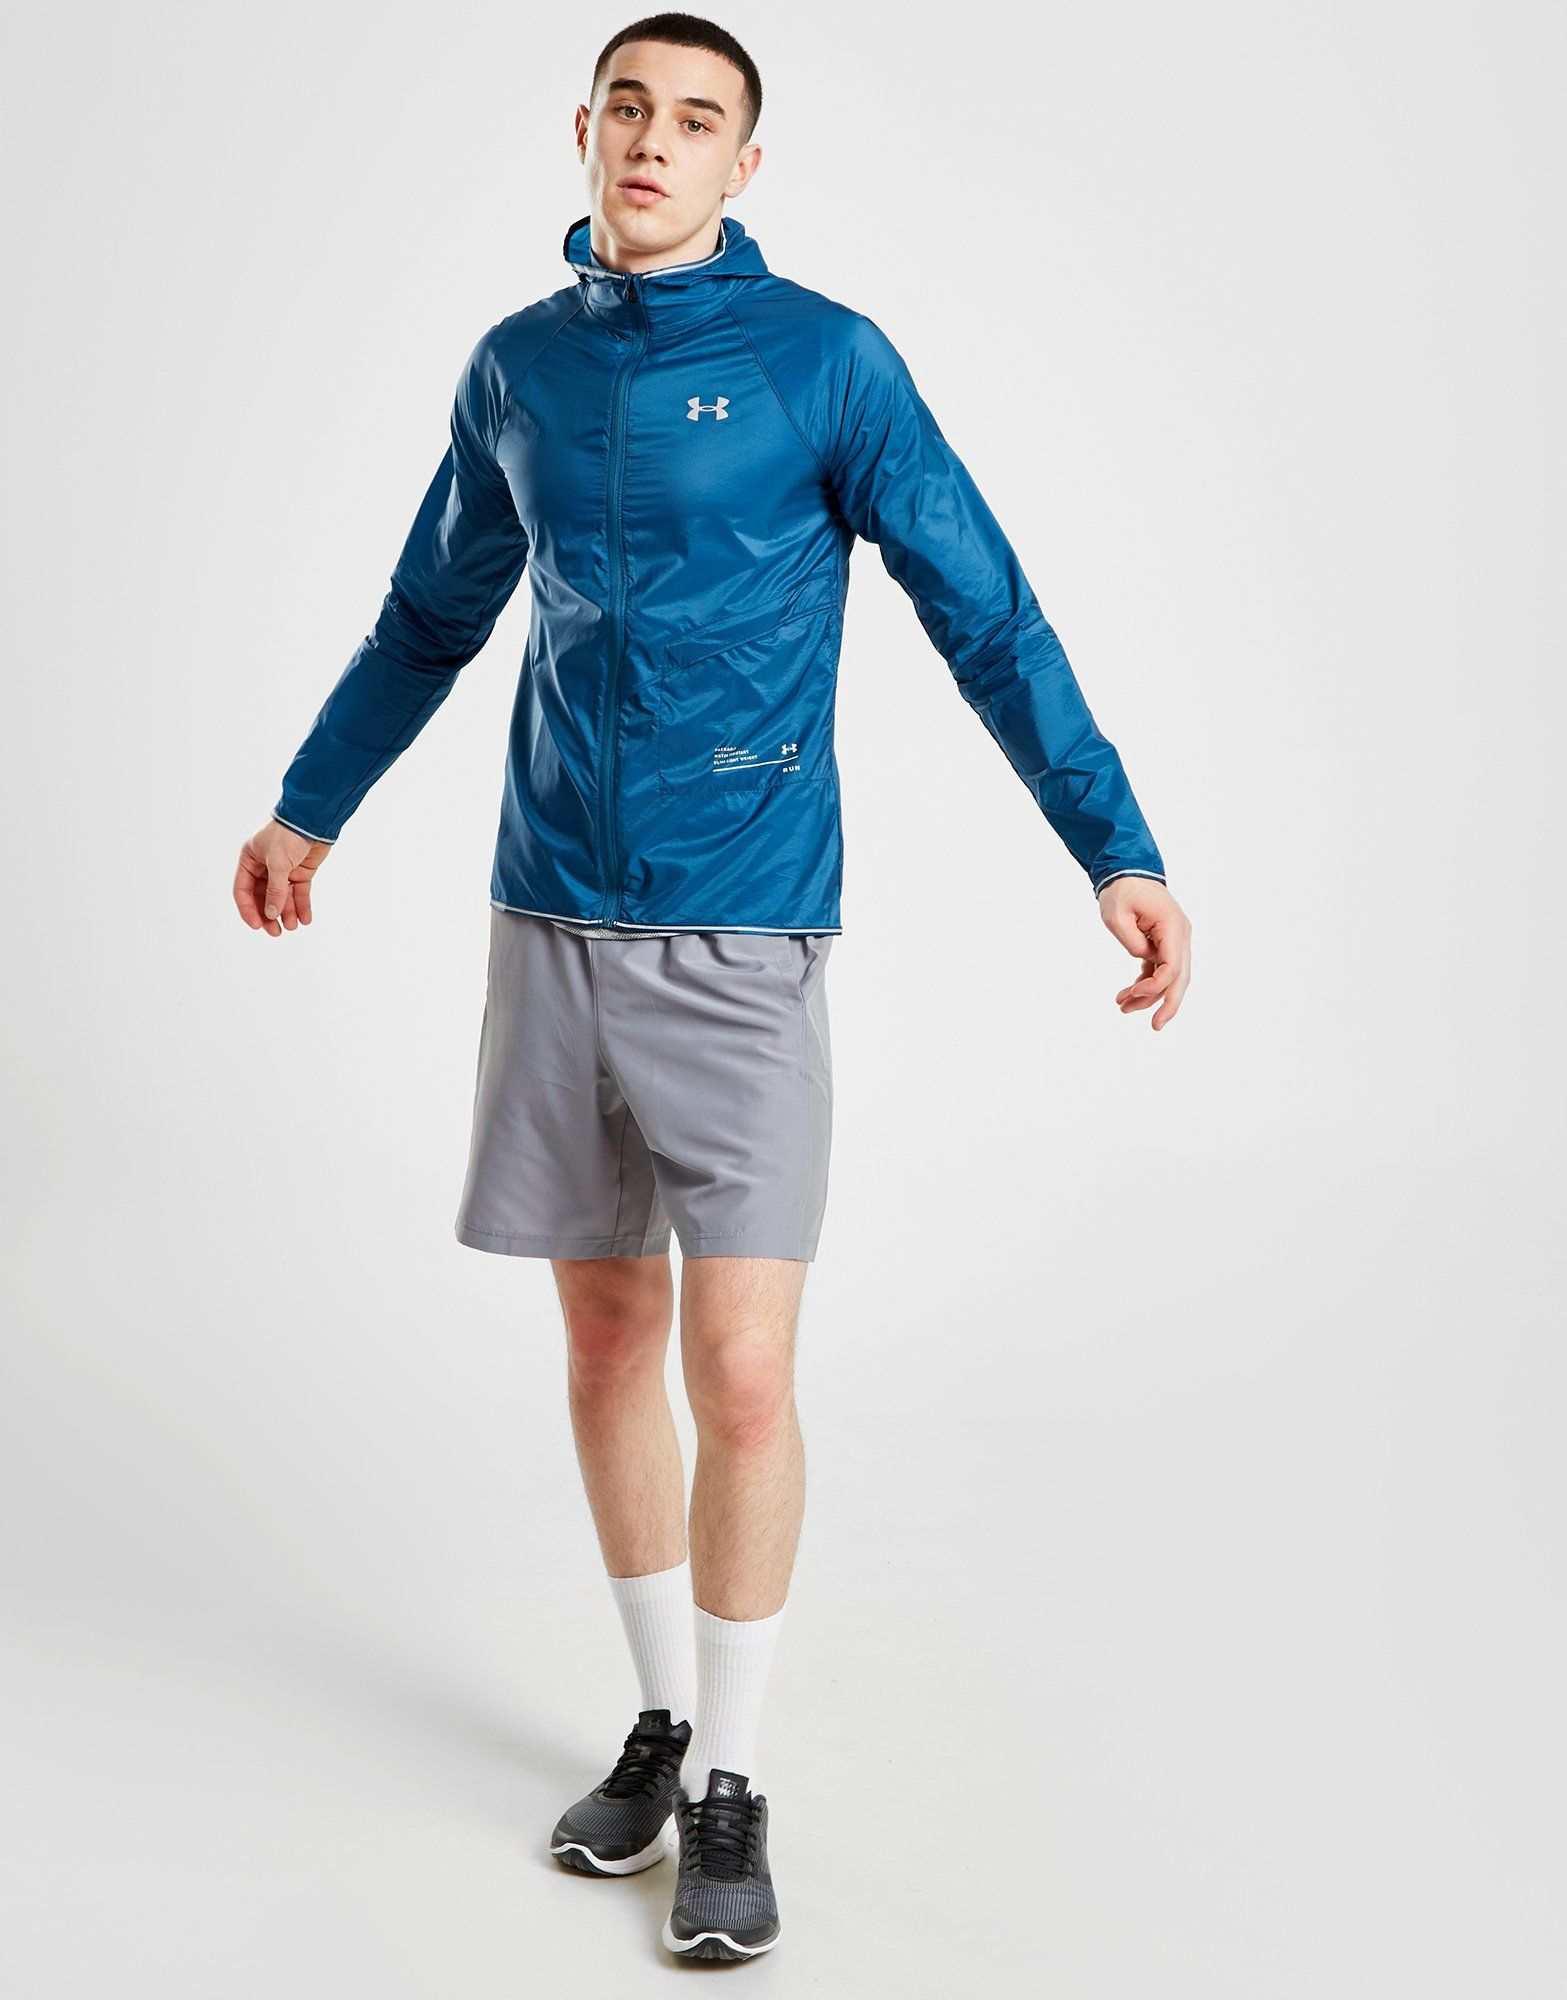 Under Armour Qualifier Pacmac Jacket